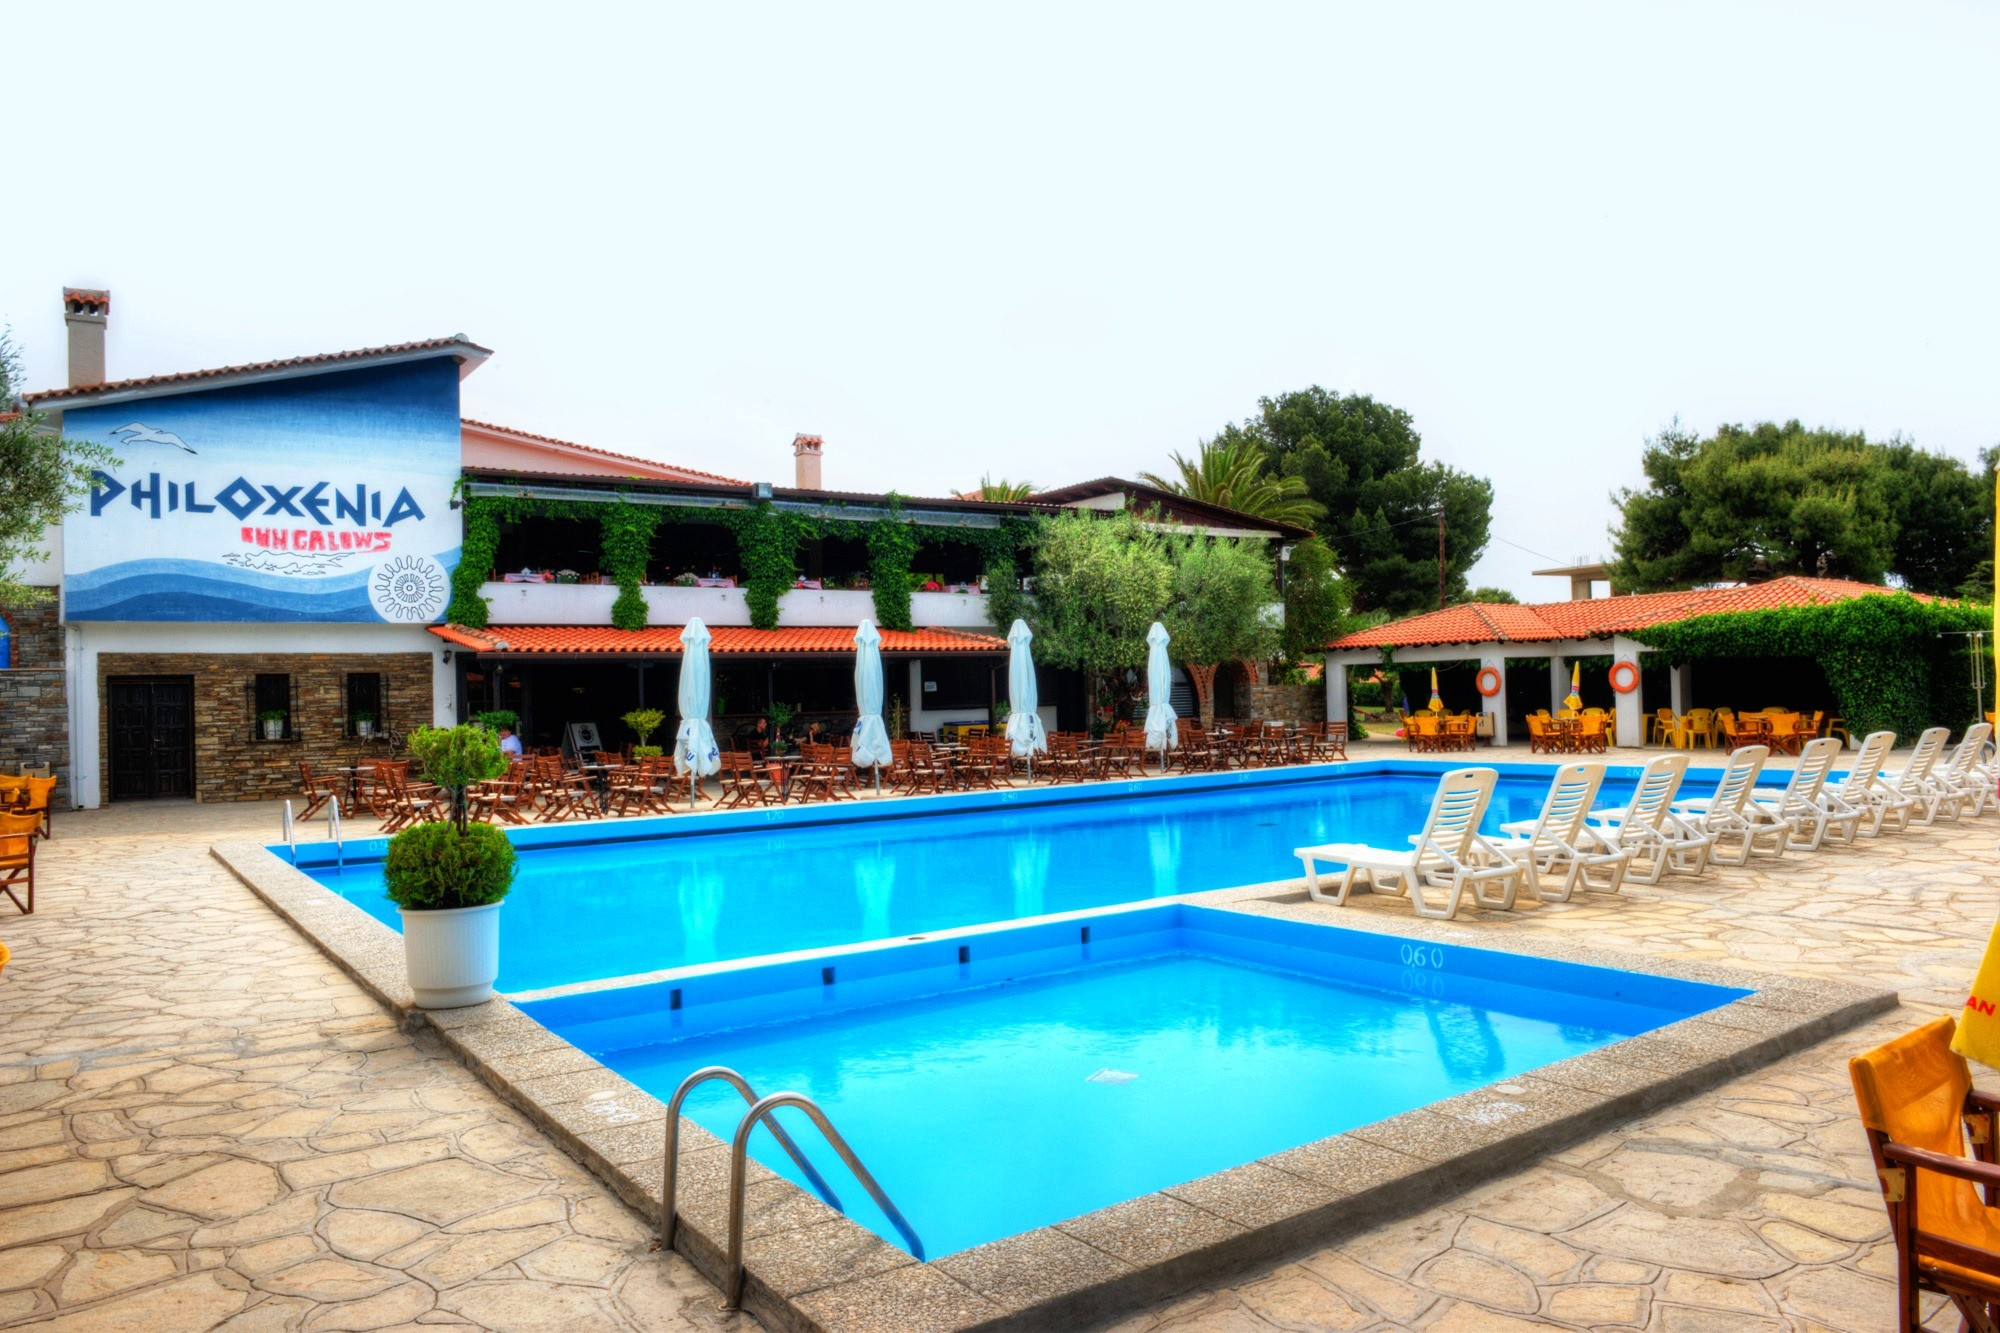 Philoxenia Bungalows Hotel - басейн